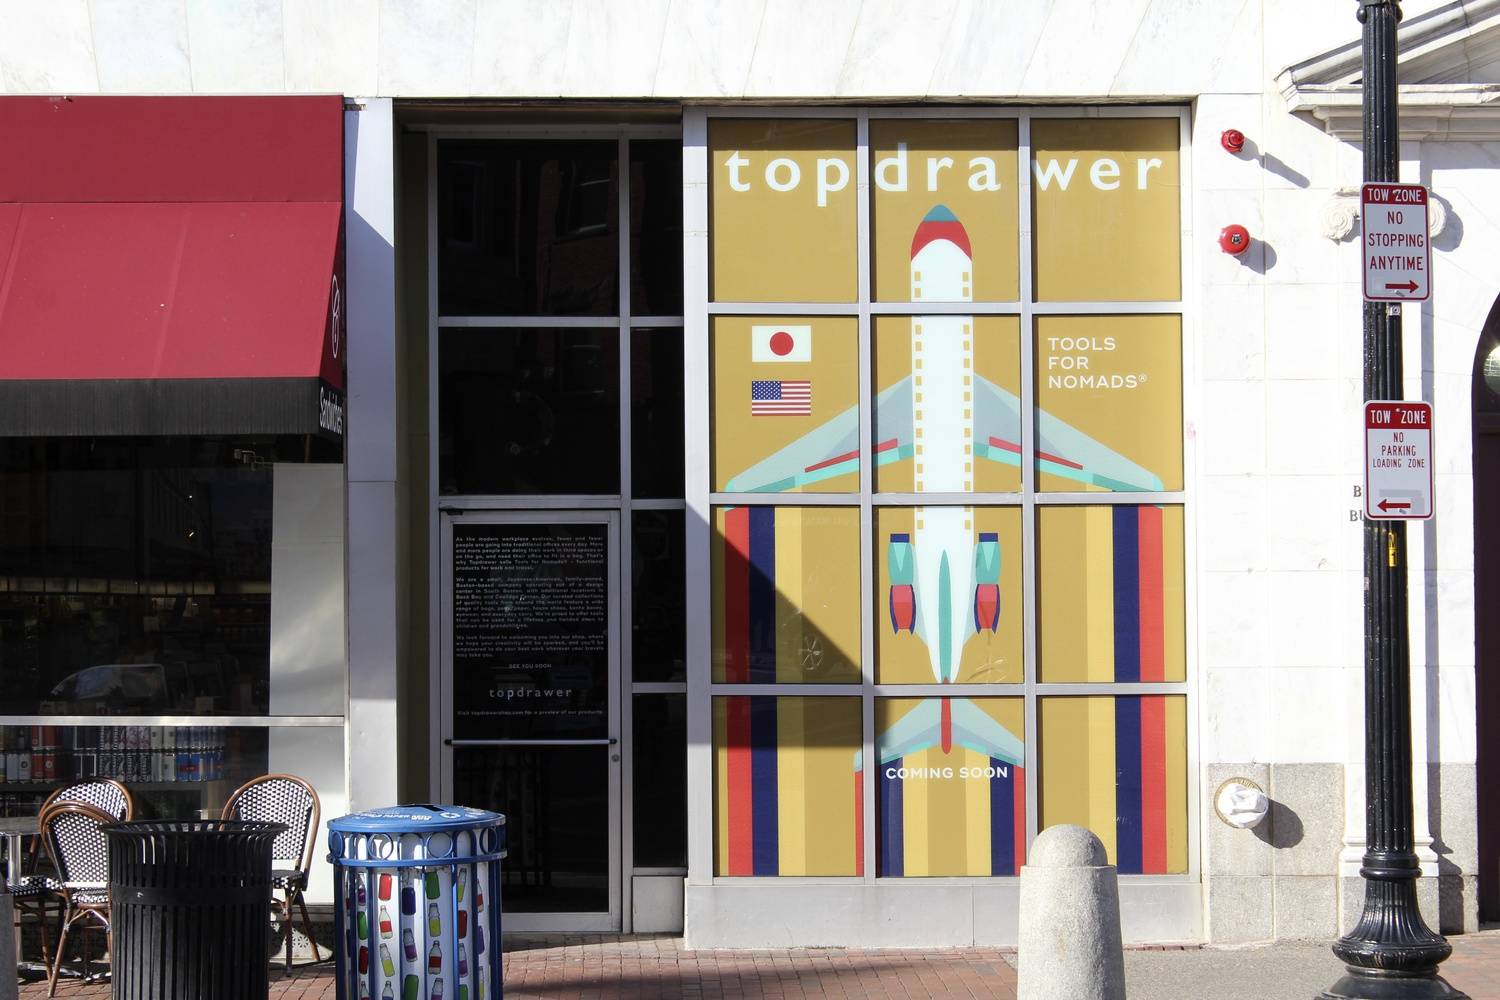 Topdrawer, a family-owned Japanese-American store for everyday accessories, is opening this spring in the Square in the space previously occupied by Black Ink.